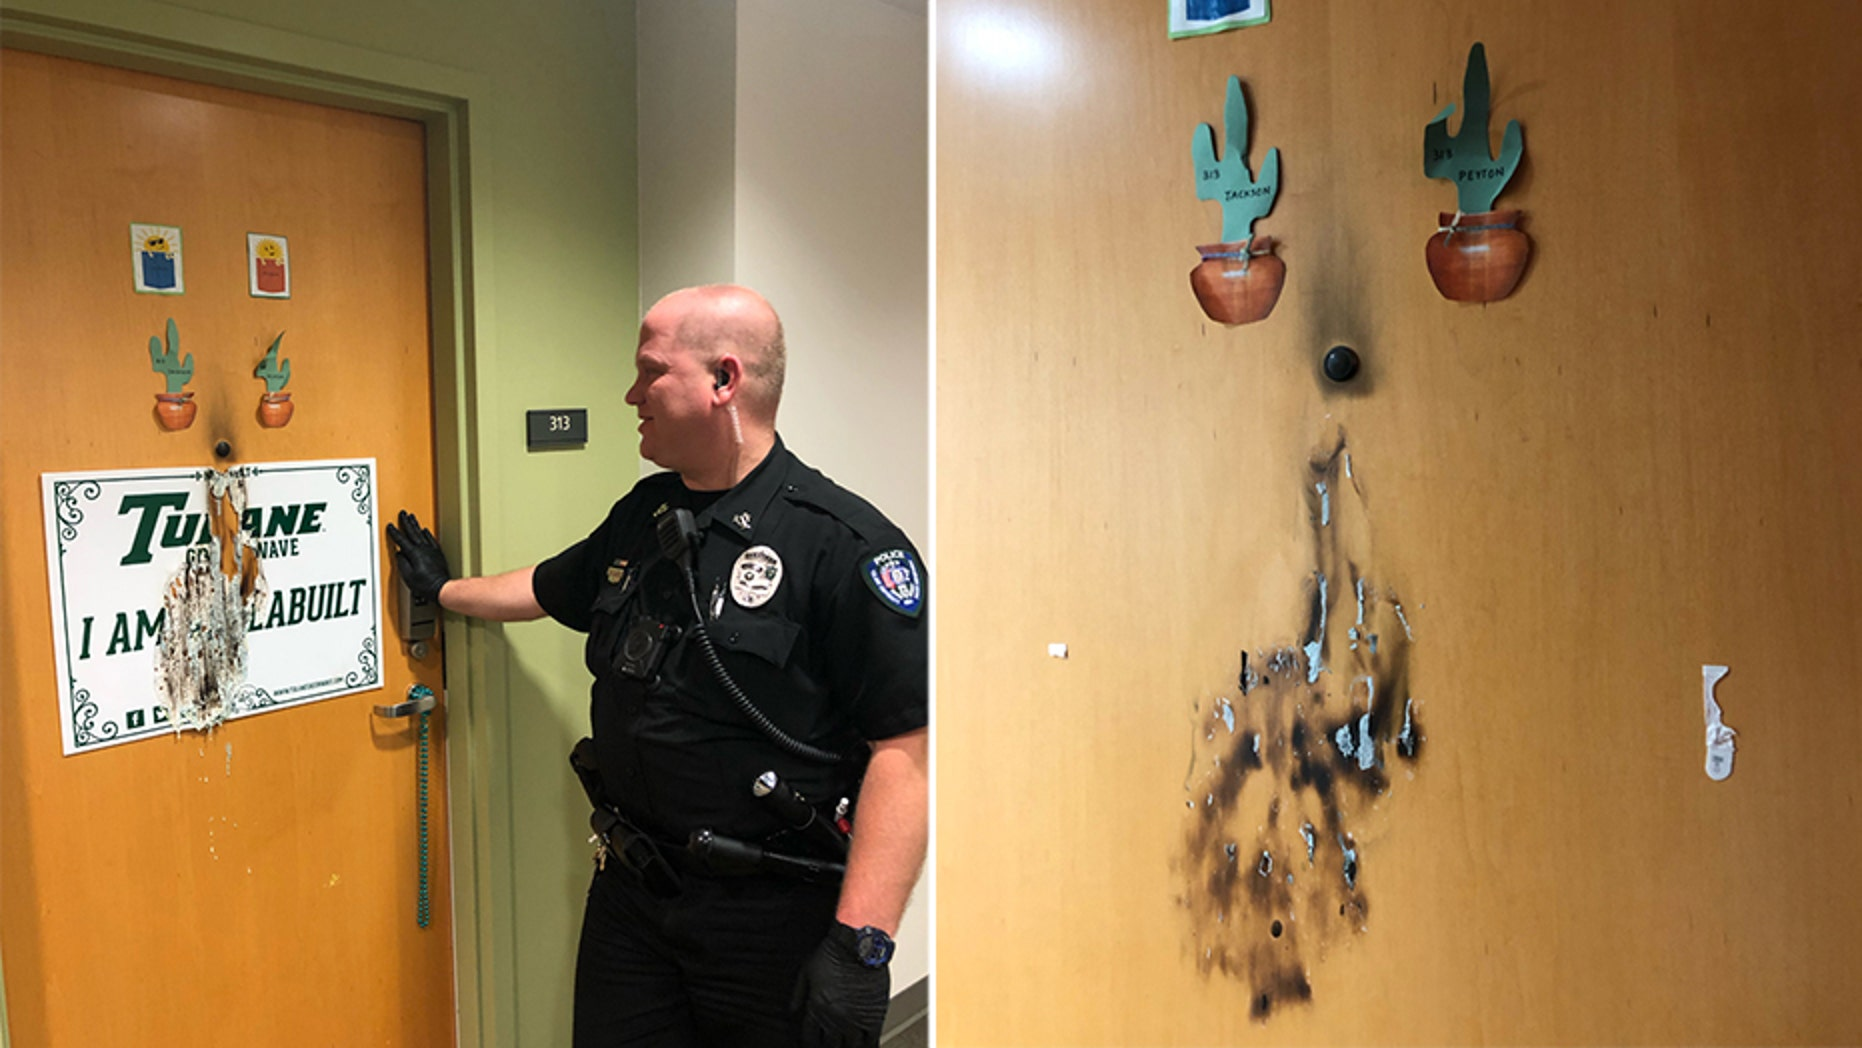 Police officer David Harris assesses the damage after the alleged targeted arson attack on Tulane campus.